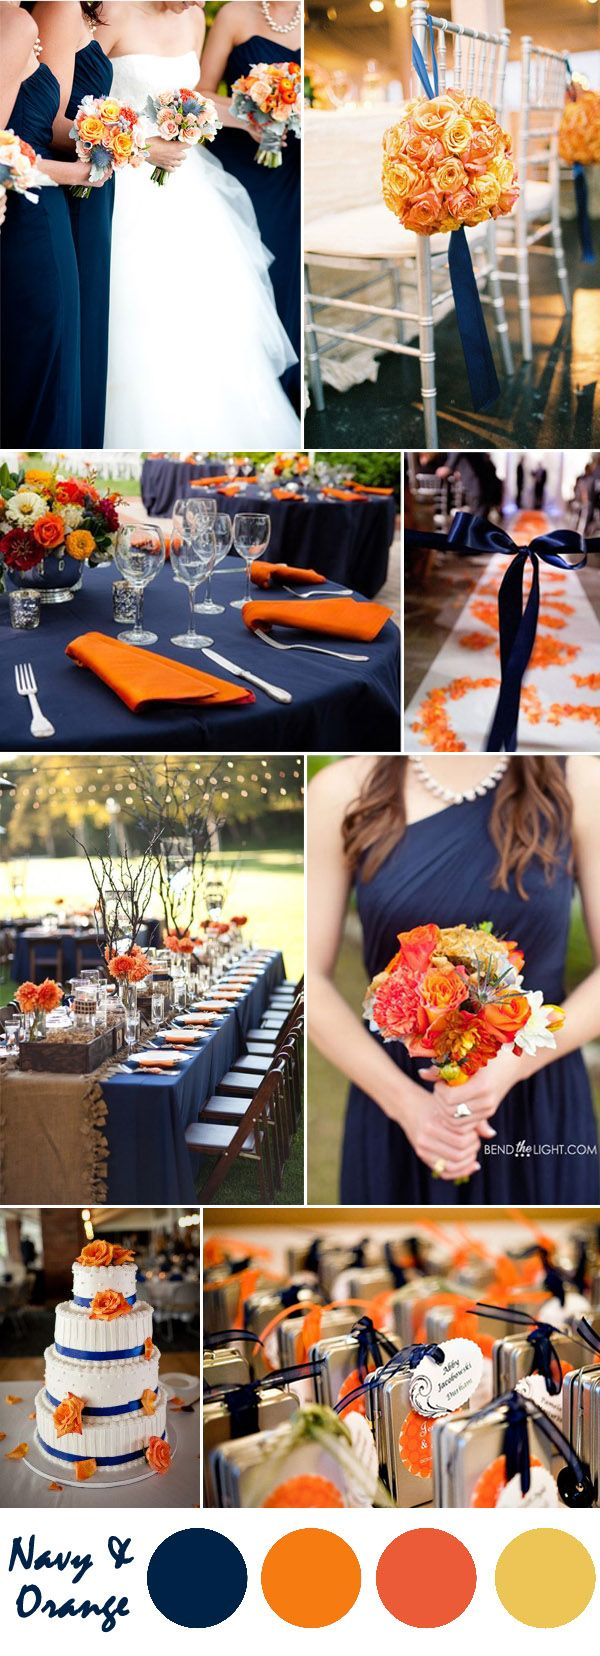 手机壳定制karen millen glasses  navy blue and orange wedding color ideas